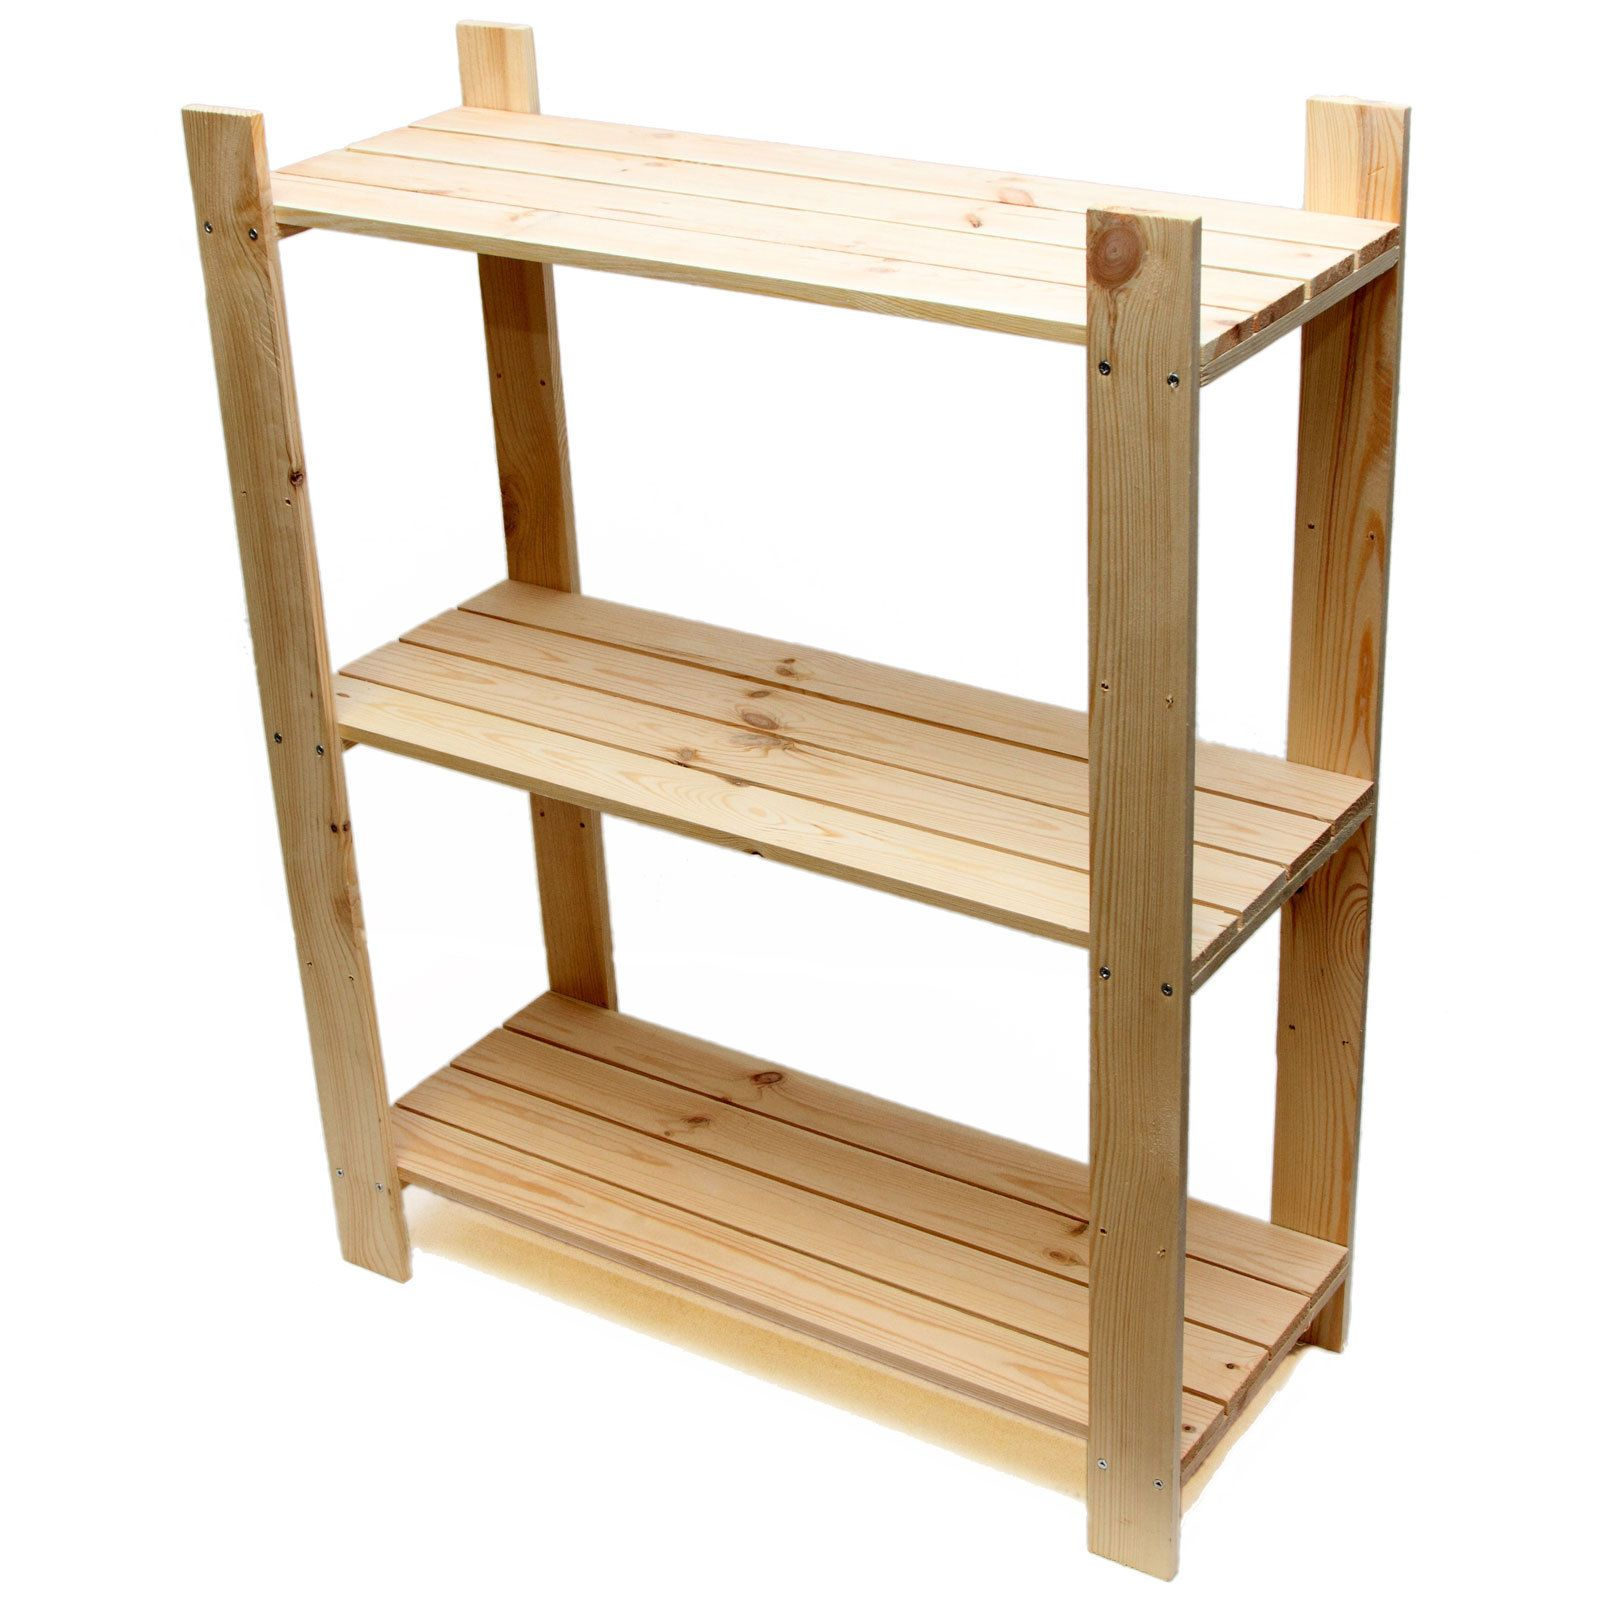 3 Tier Pine Shelf Unit   Pine Shelves With 3 Wooden Shelves   Freestanding  Rack